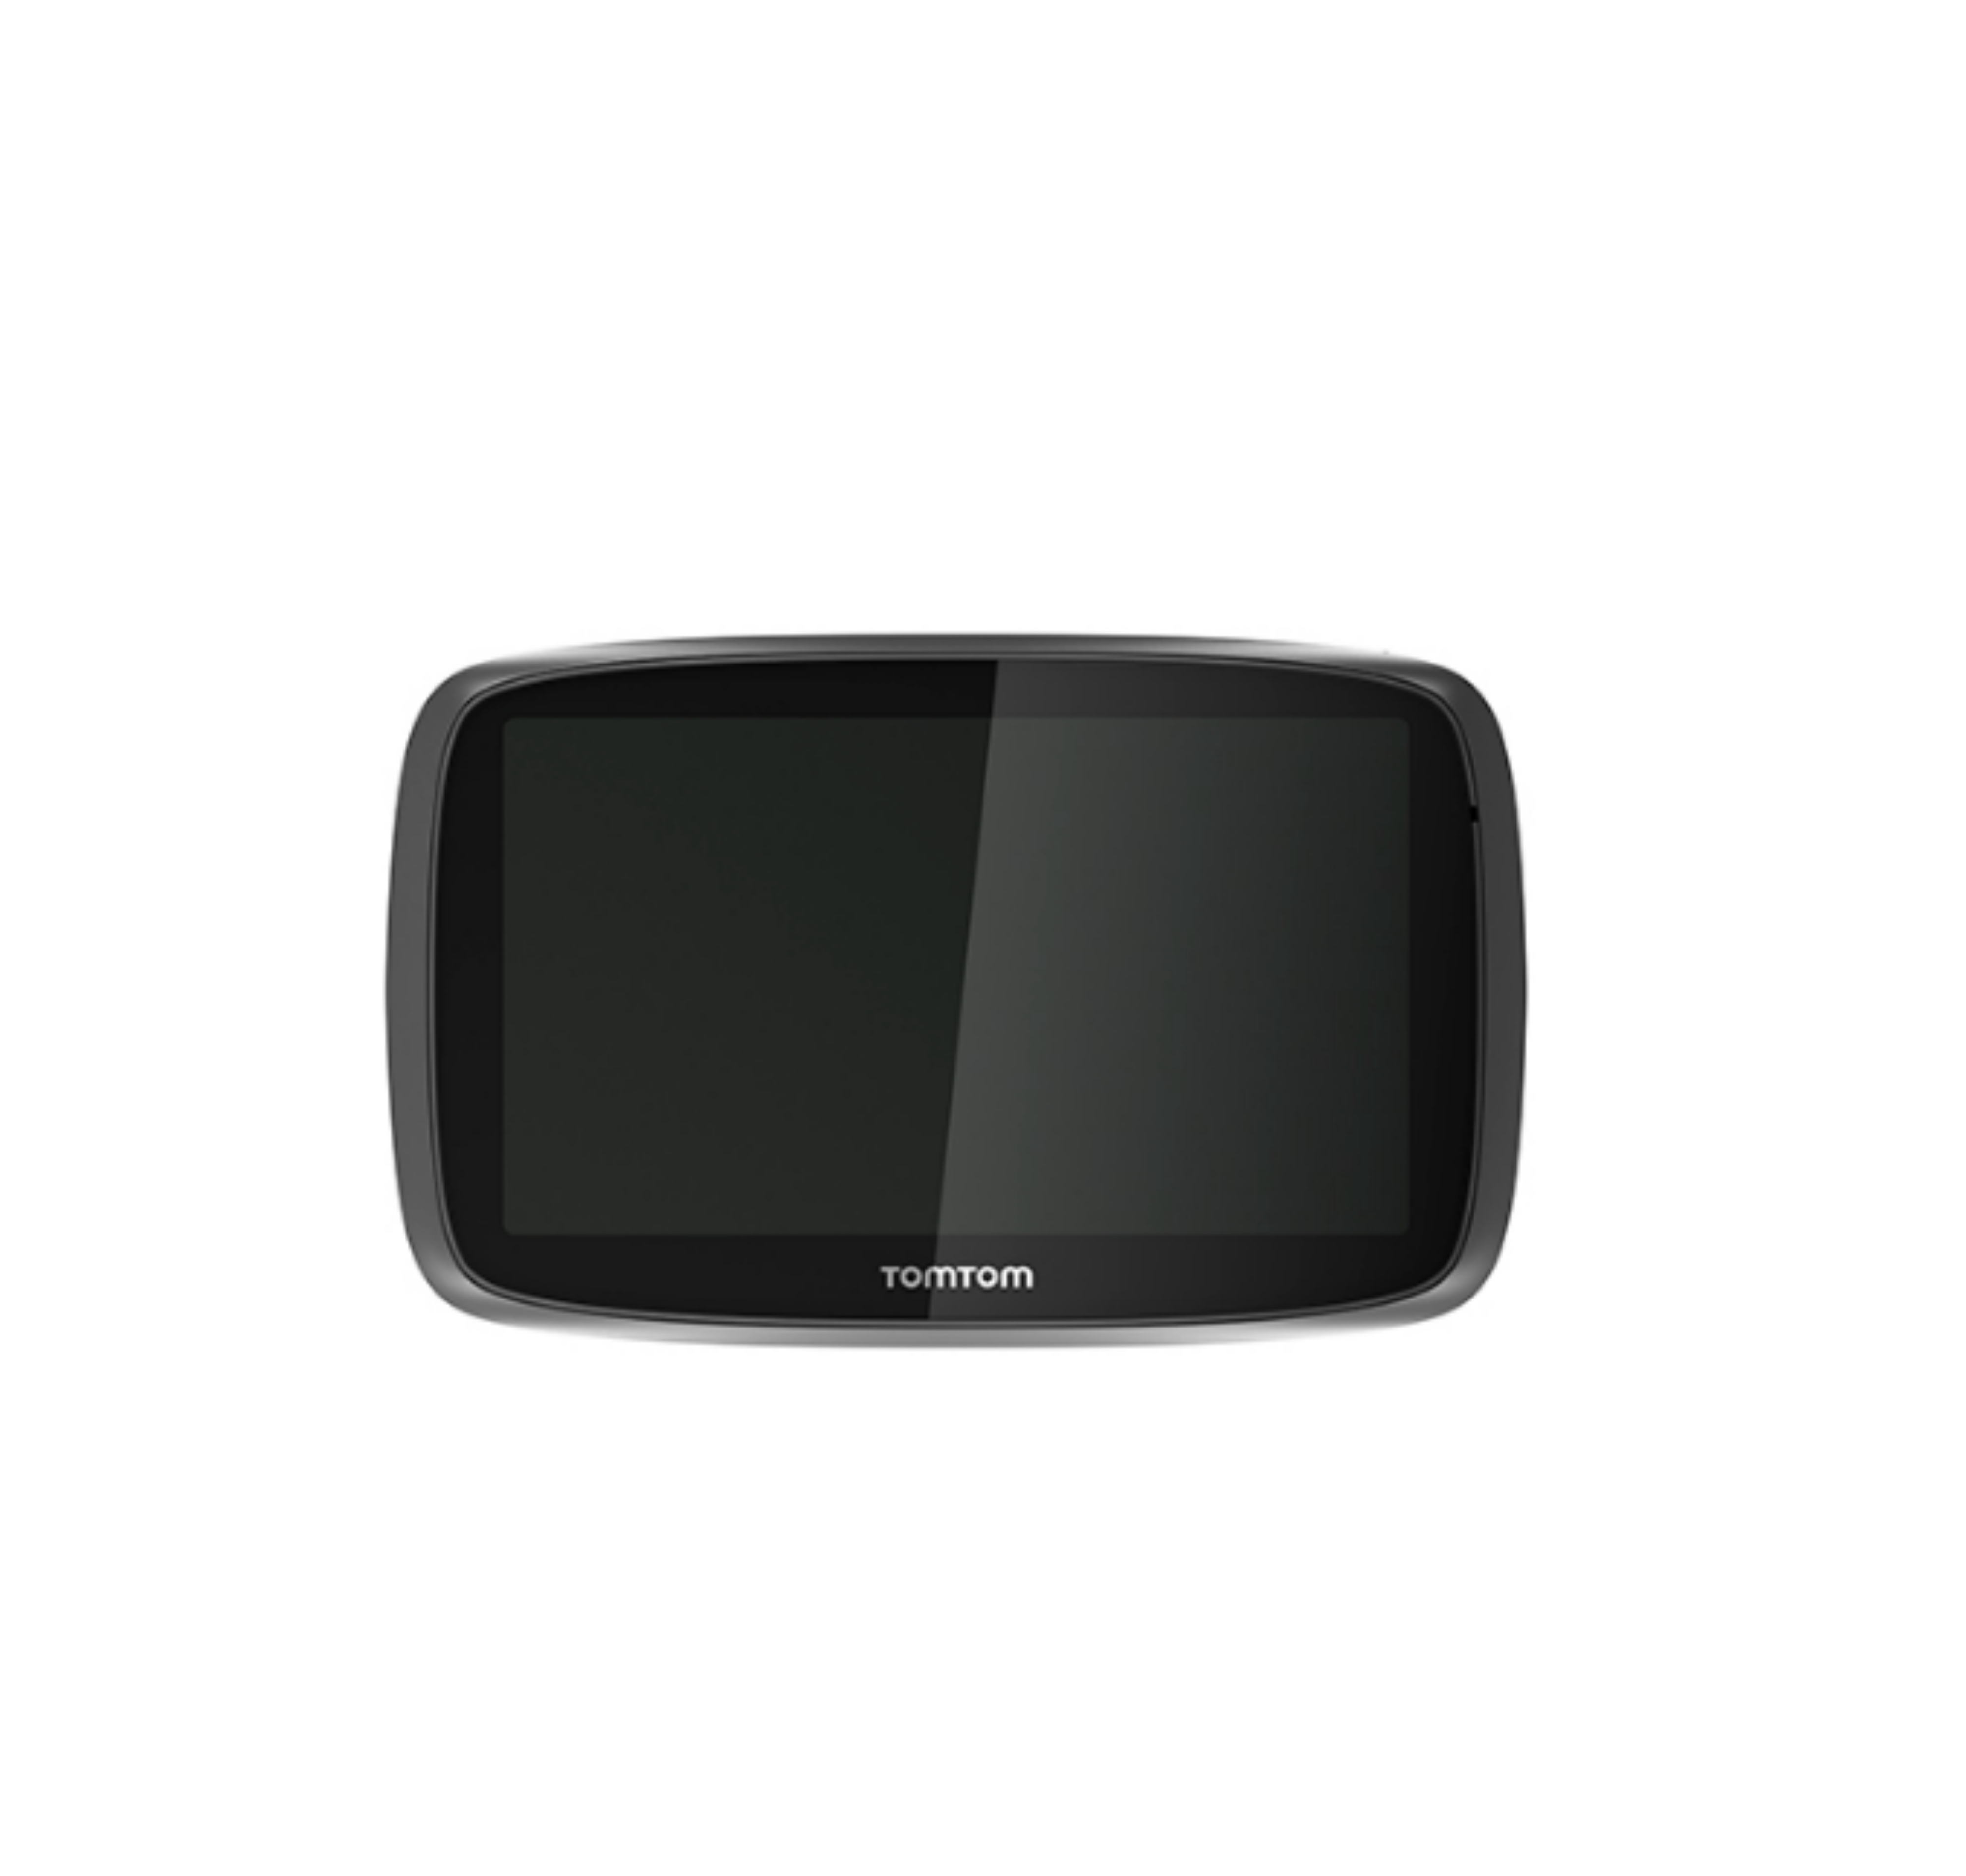 tomtom go pro 6250 eu navigatore satellitare gps free lifetime traffic speed. Black Bedroom Furniture Sets. Home Design Ideas